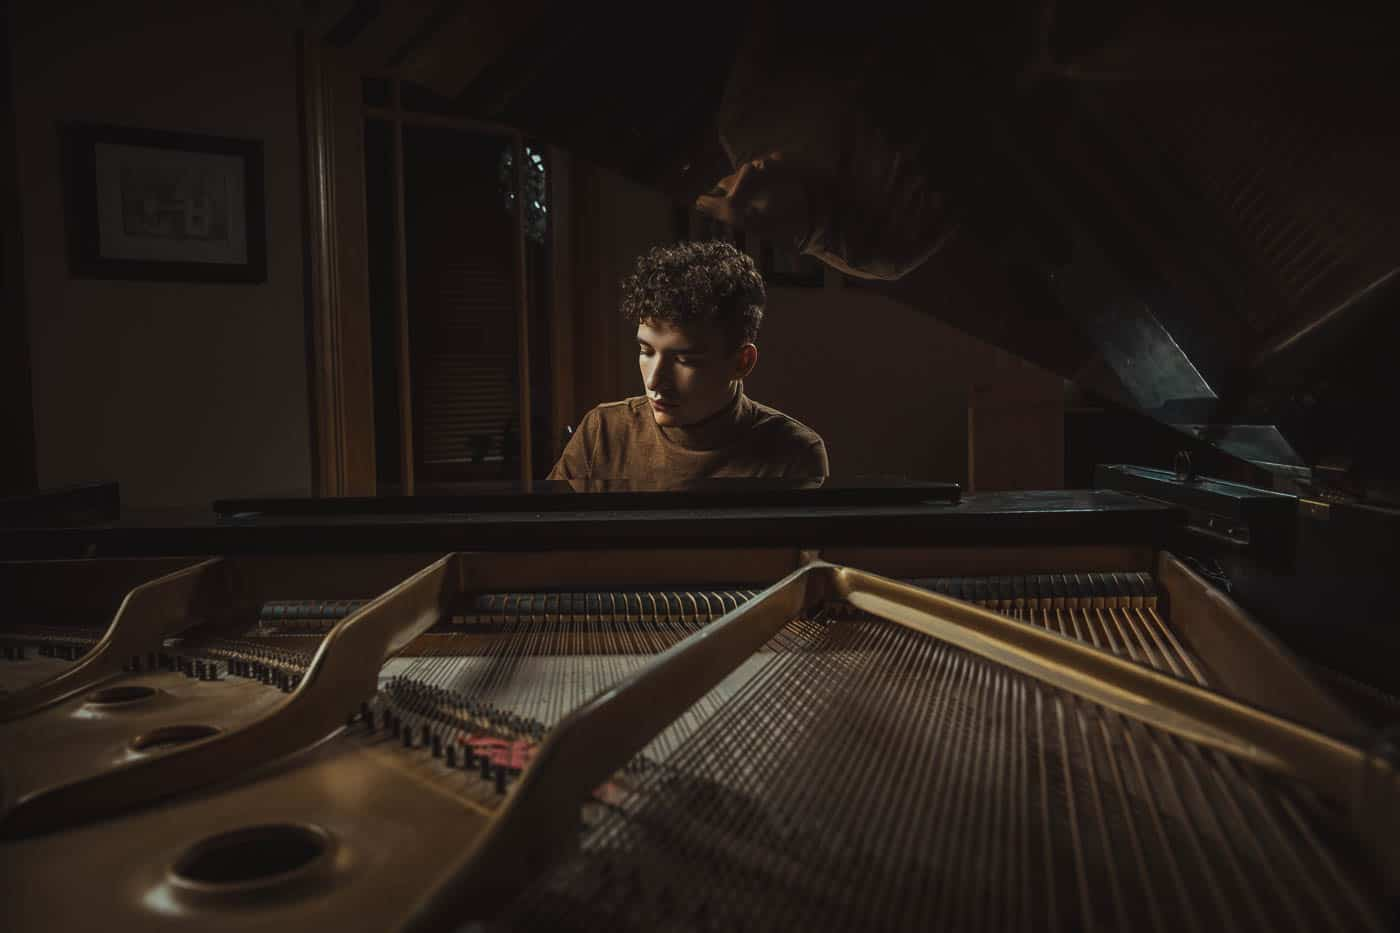 Portraits with grand piano